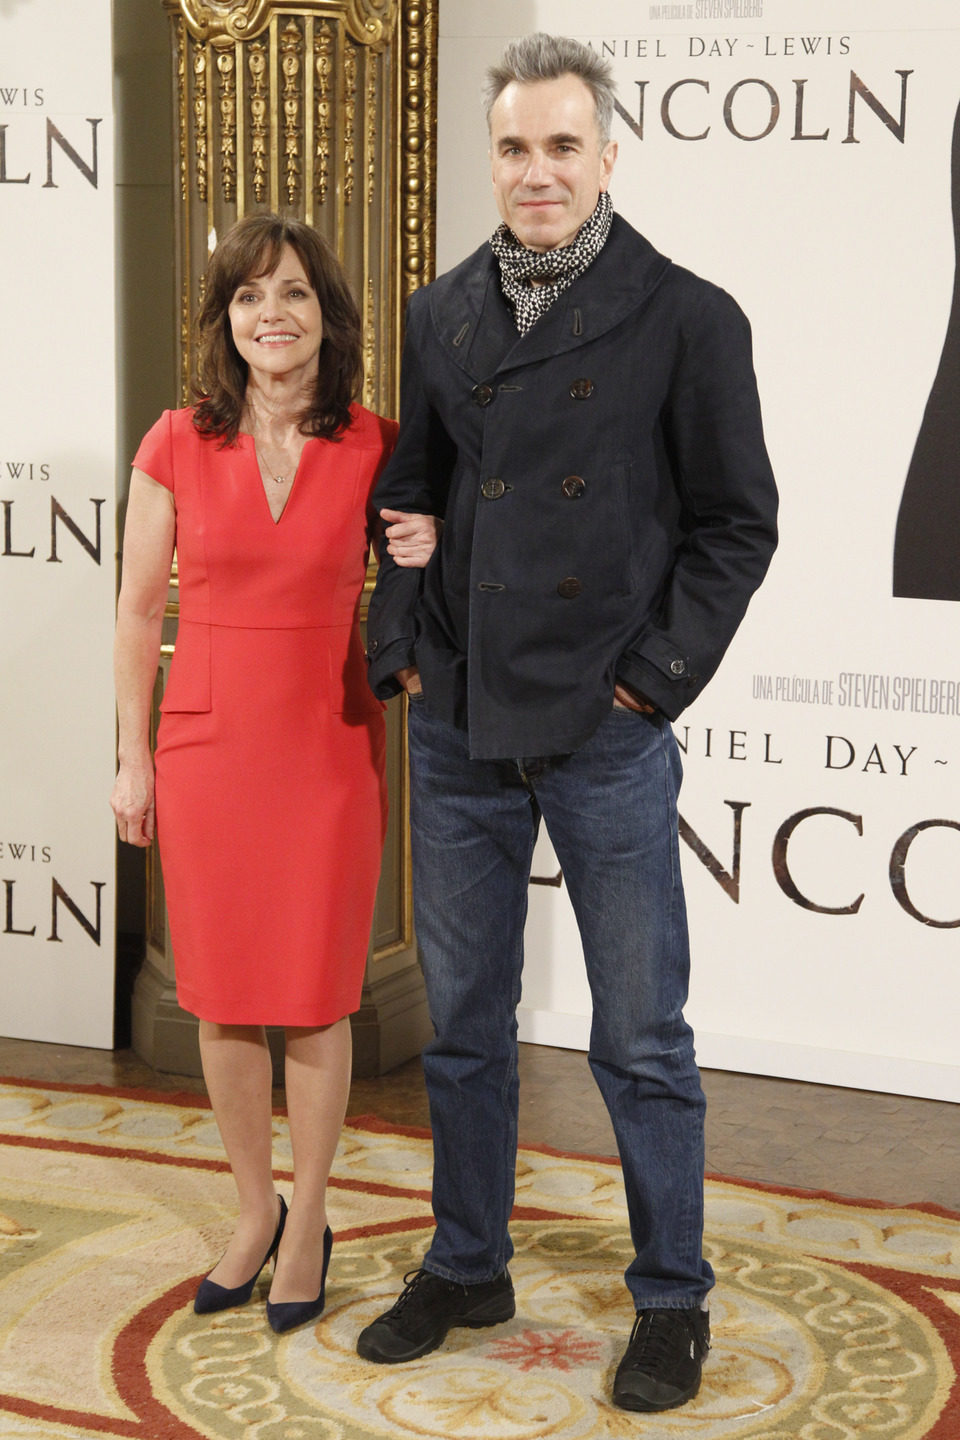 Daniel Day-Lewis y Sally Field en la presentación de 'Lincoln' en Madrid